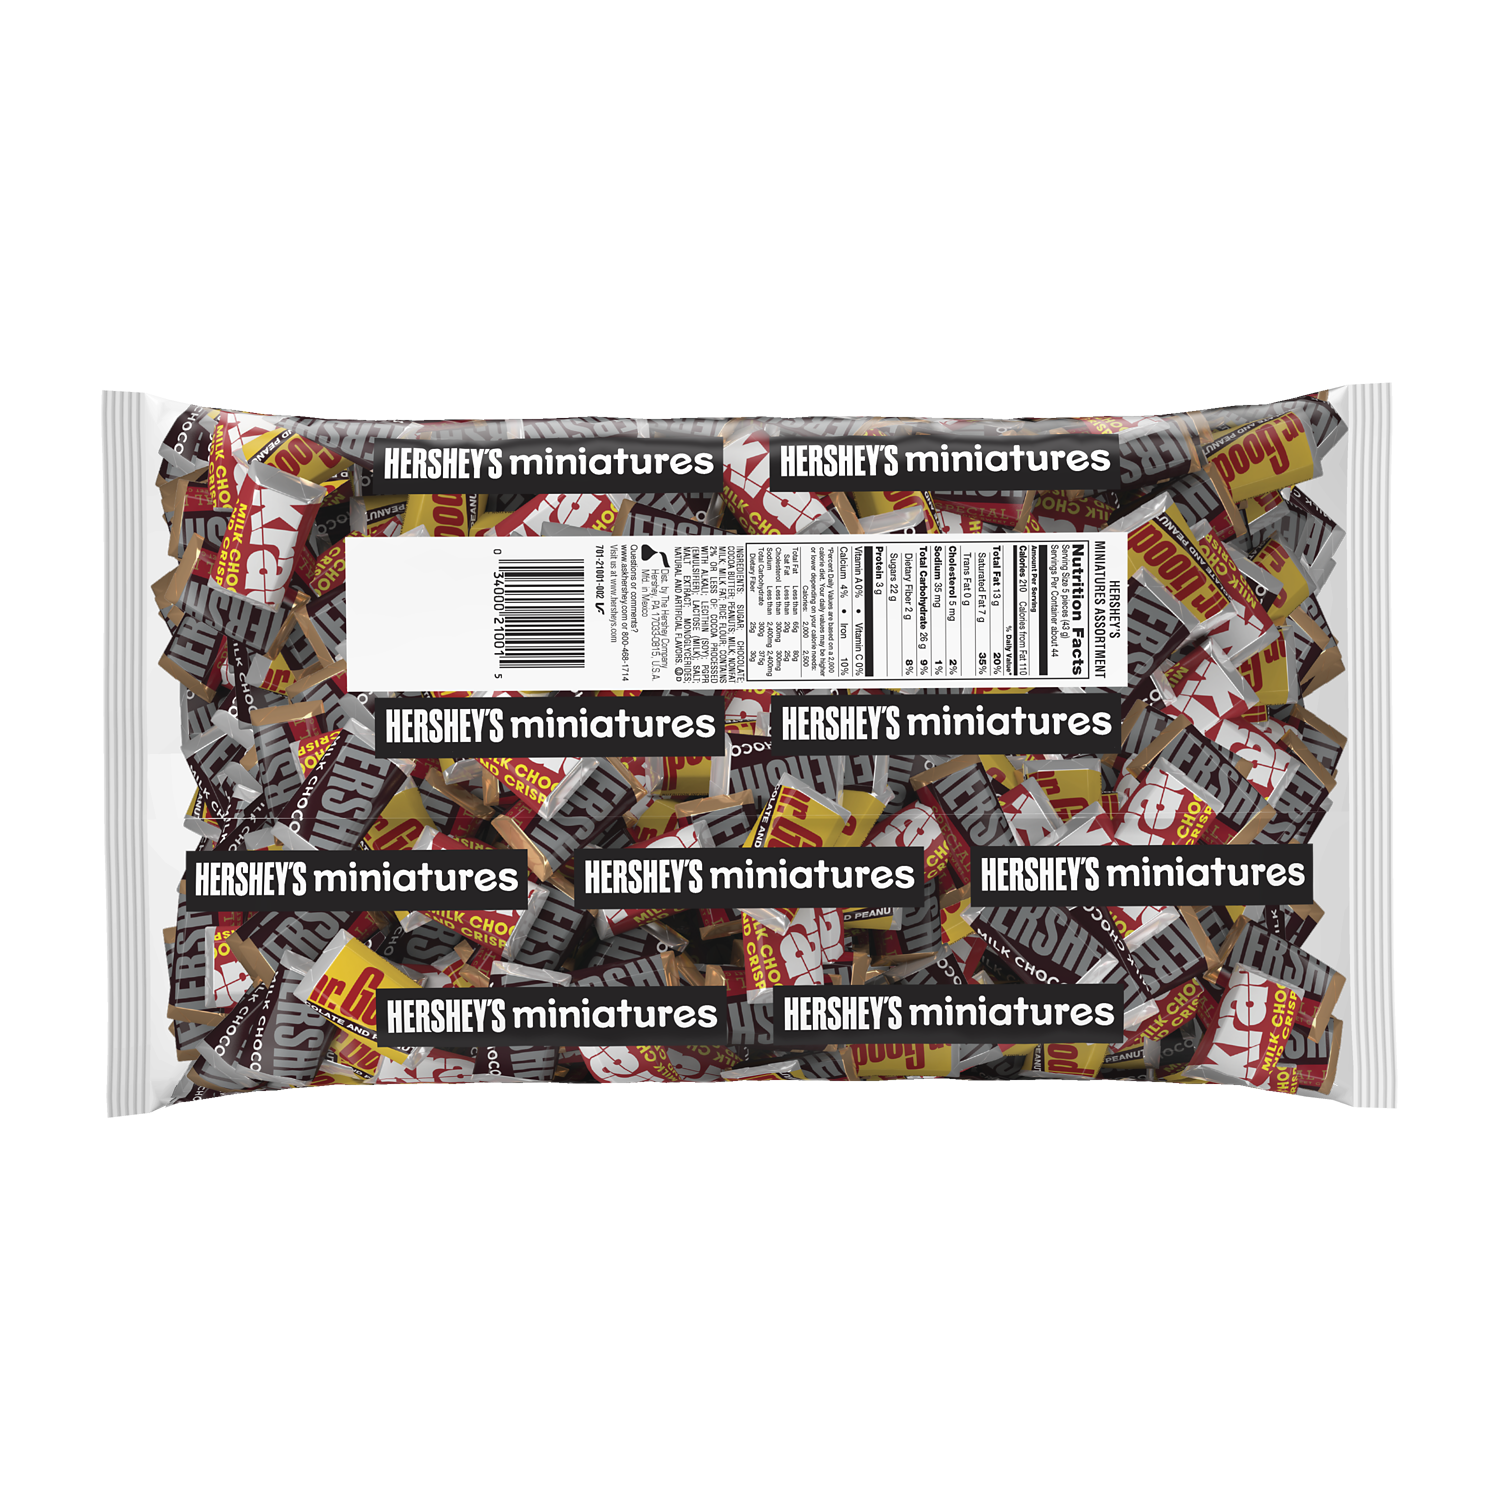 HERSHEY'S Miniatures Assortment, 66.7 oz bag - Back of Package